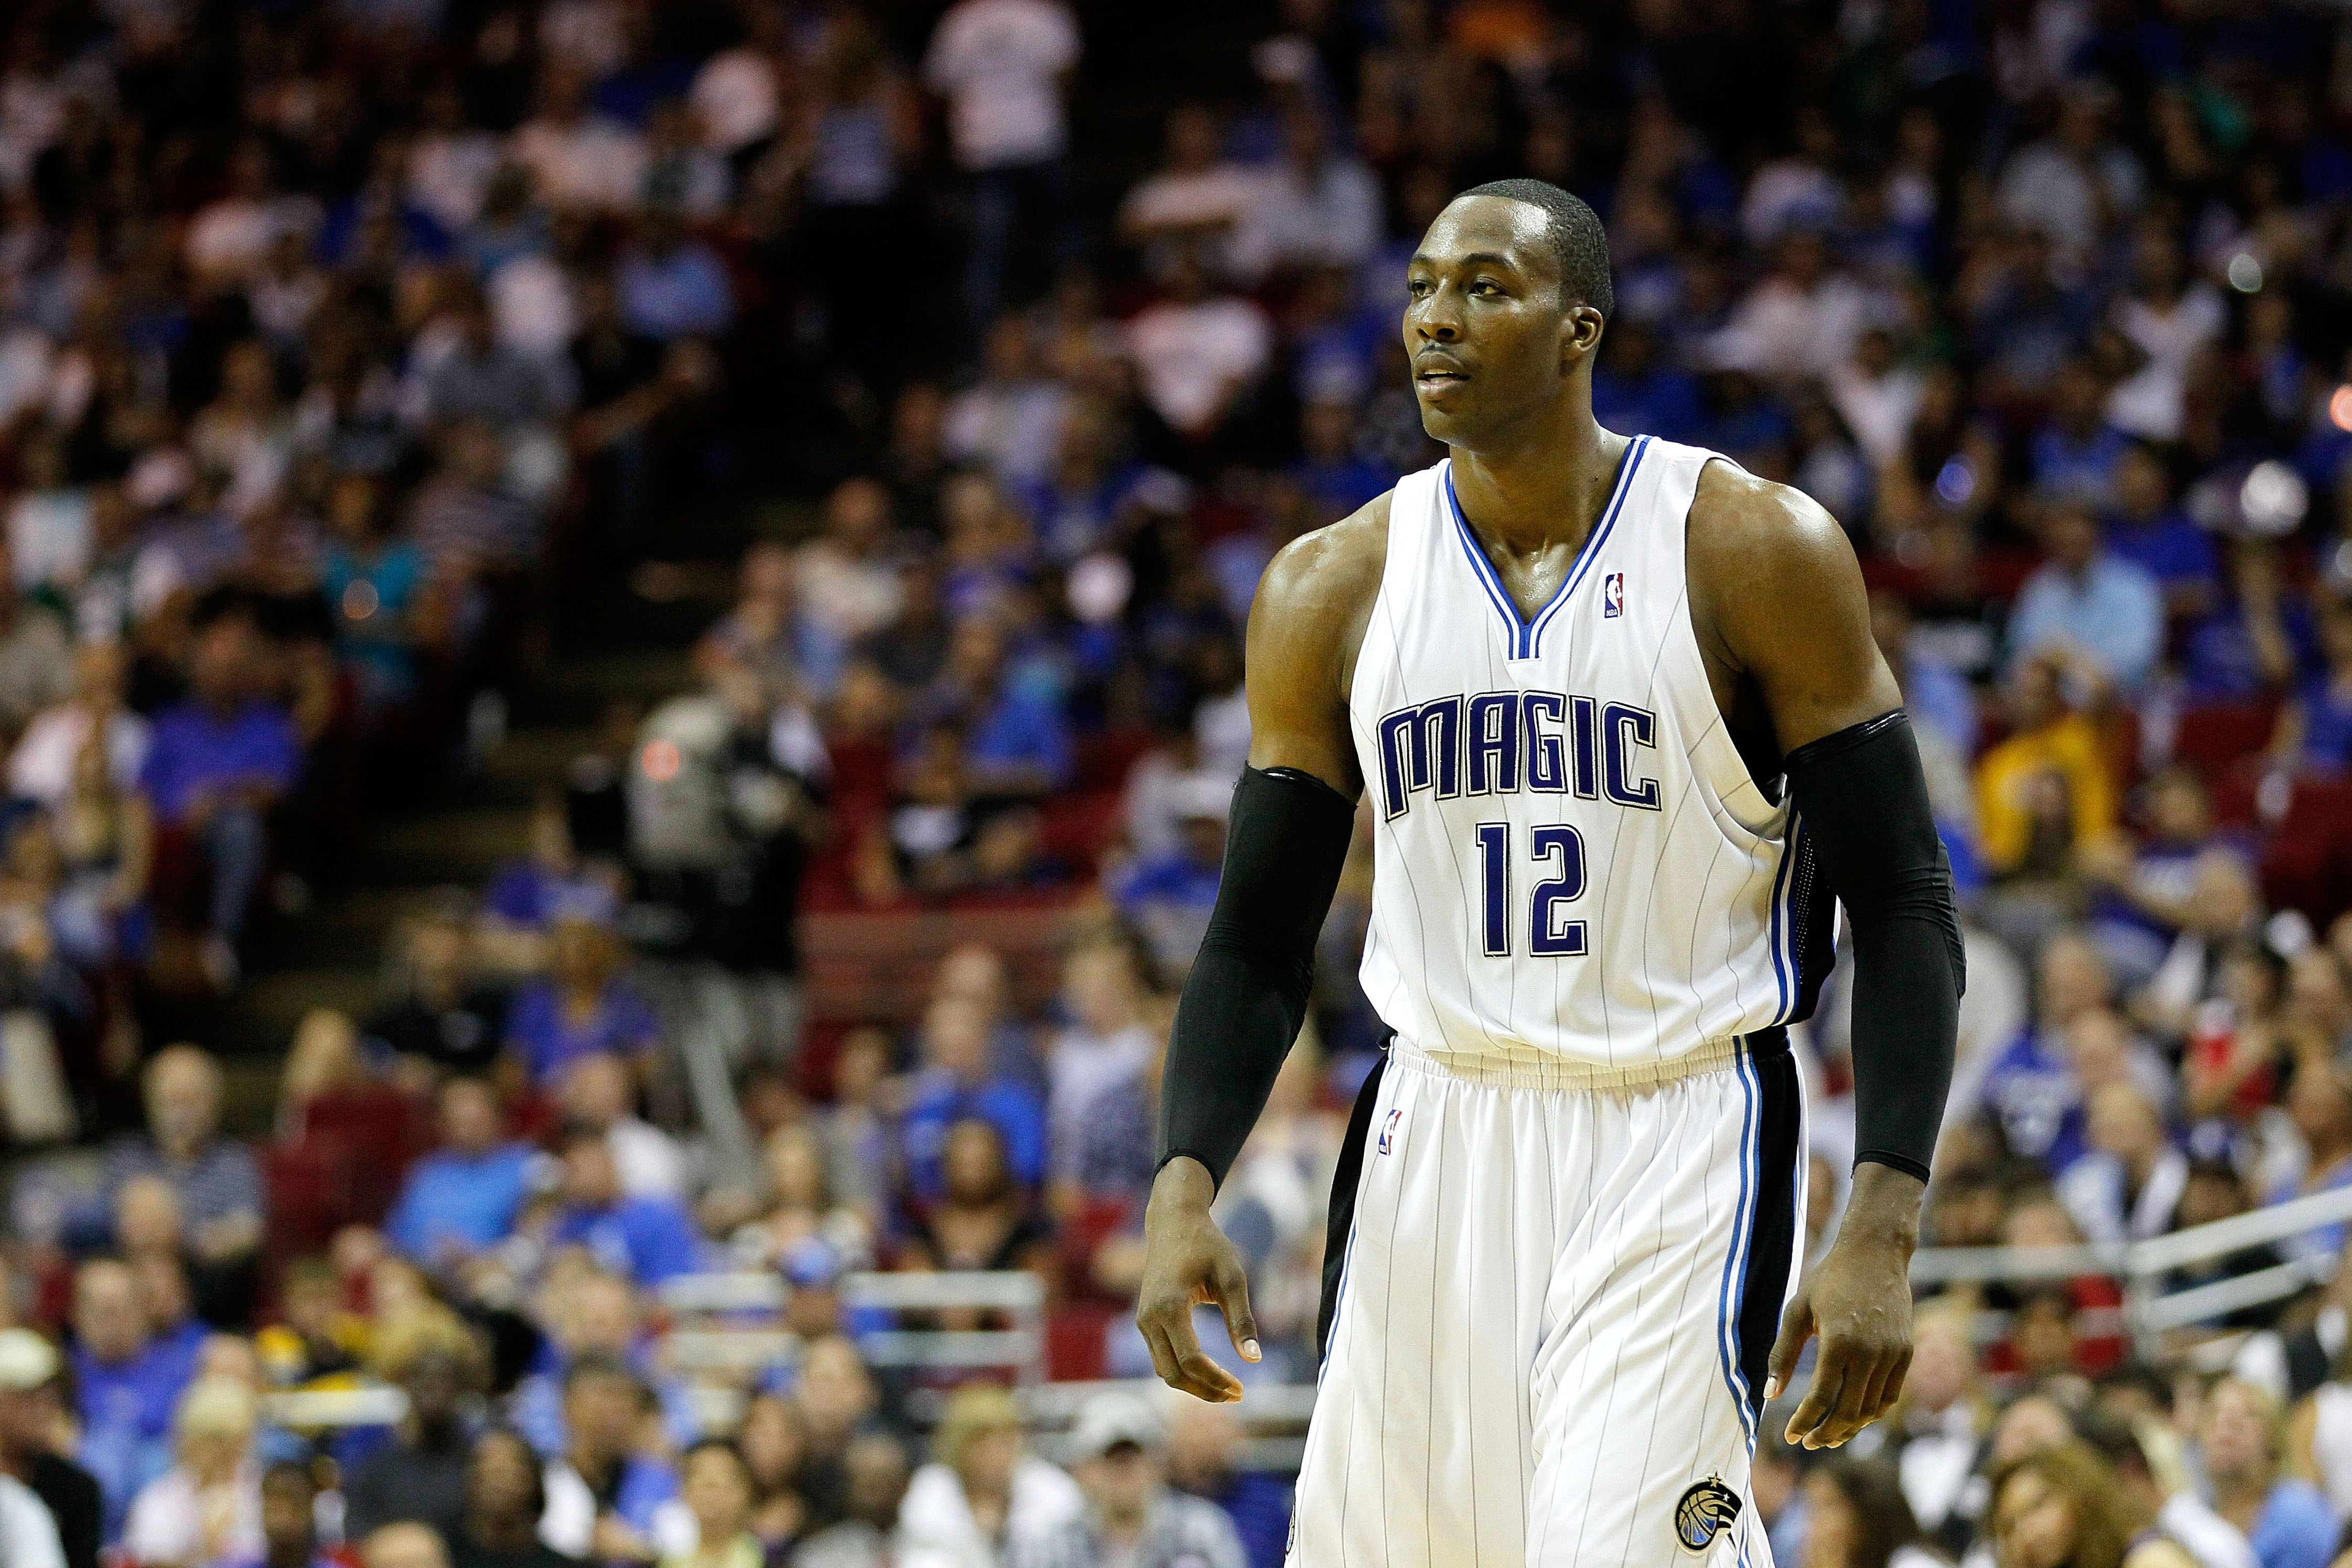 ORLANDO, FL - MAY 26:  Dwight Howard #12 of the Orlando Magic looks on against the Boston Celtics in Game Five of the Eastern Conference Finals during the 2010 NBA Playoffs at Amway Arena on May 26, 2010 in Orlando, Florida.  NOTE TO USER: User expressly